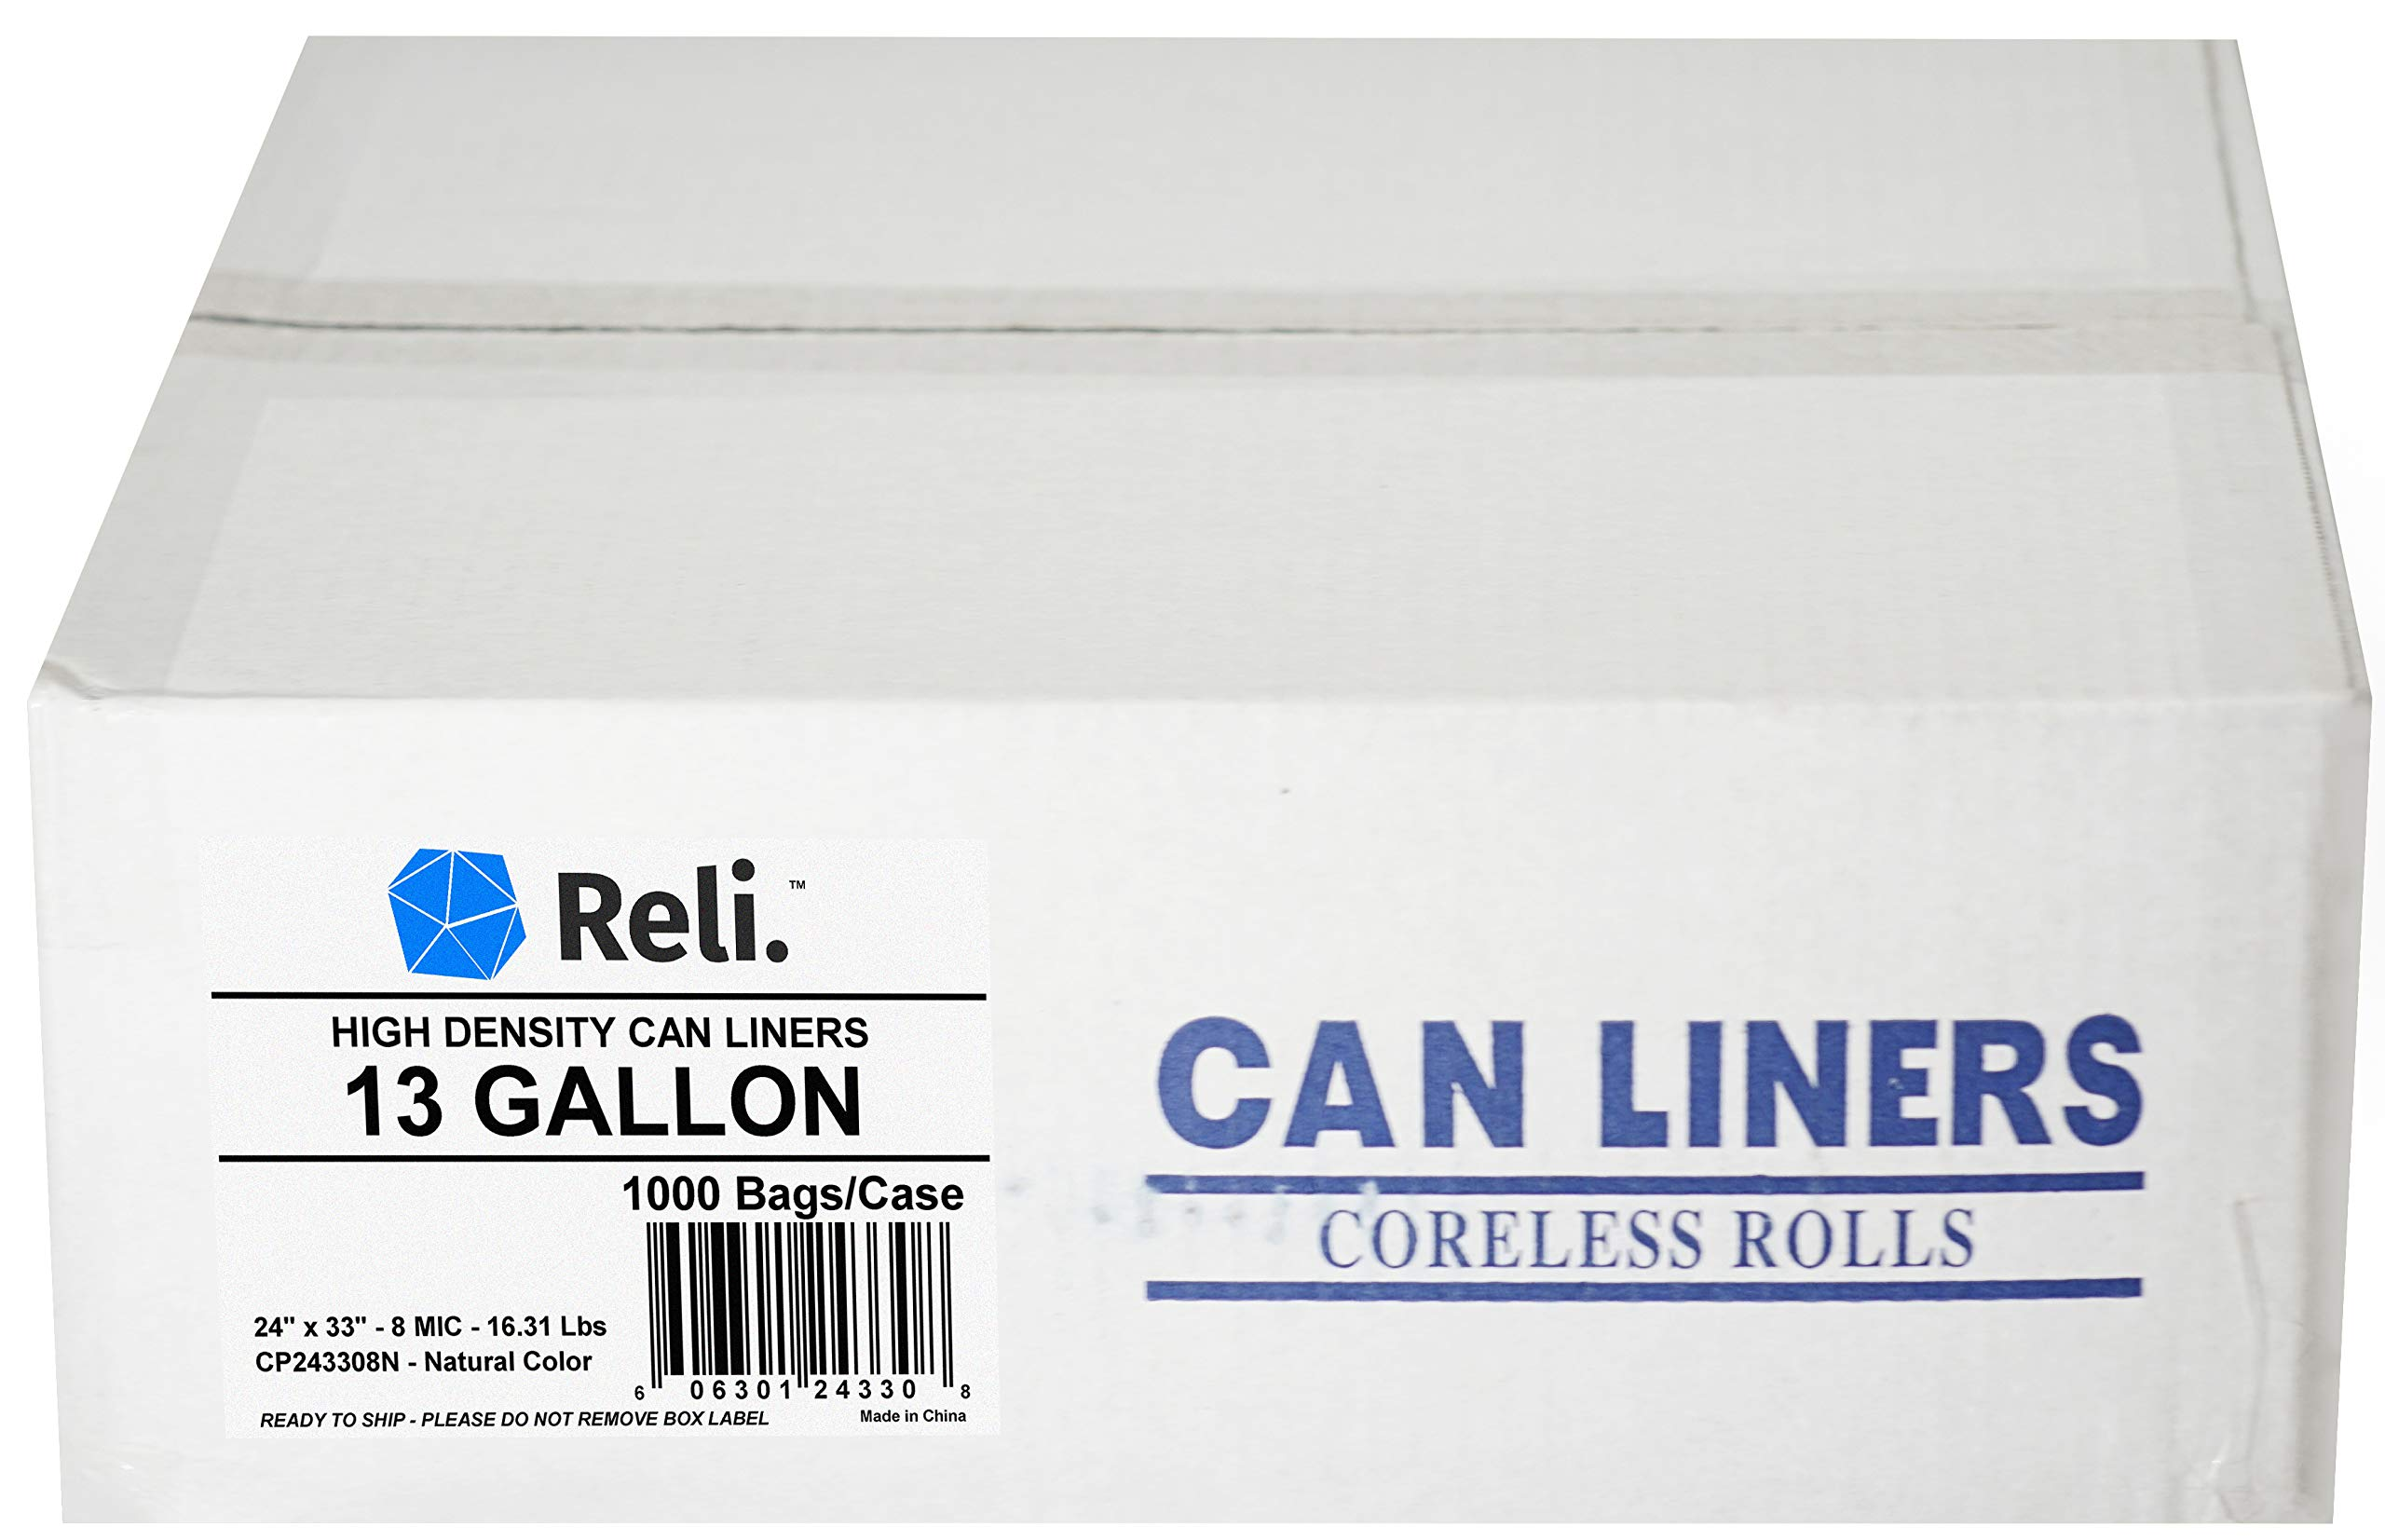 Reli. 13 Gallon Trash Bags (1000 Count Bulk) Clear Trash Bags 13 Gallon in Bulk - Reycling Clear Can Liners 13 Gallon - 16 Gallon Tall Kitchen Strength (13 Gal)